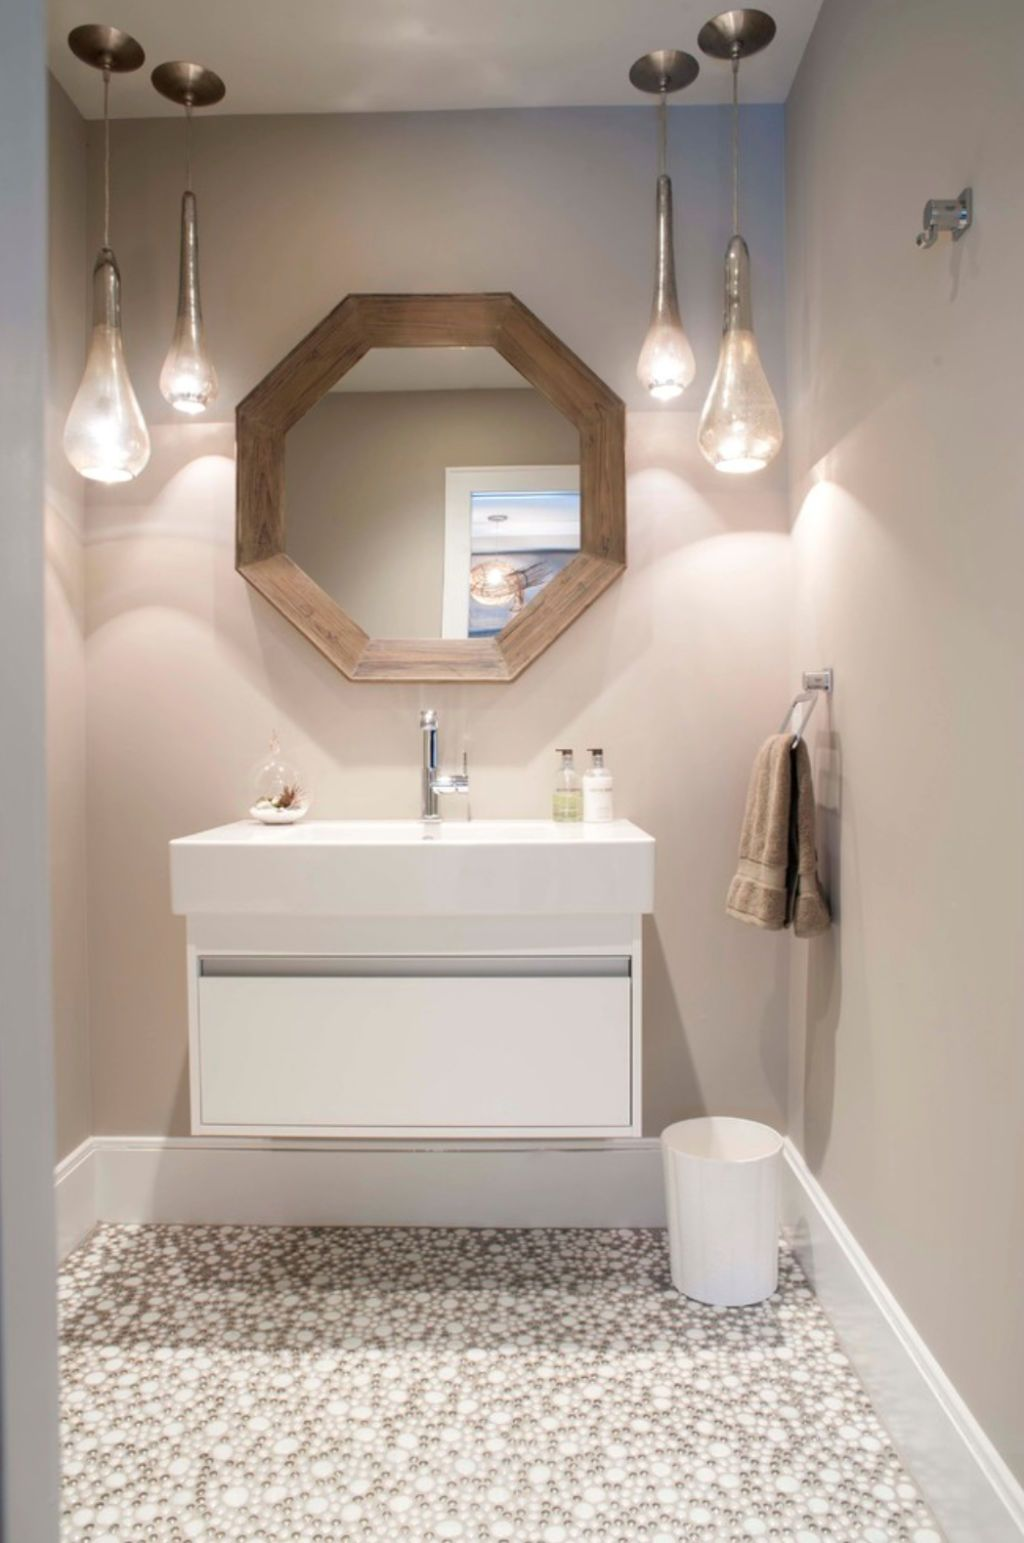 15 Paint Shades We Re In Love With Right Now Bathroom Colors Bathroom Paint Colors Paint Shades